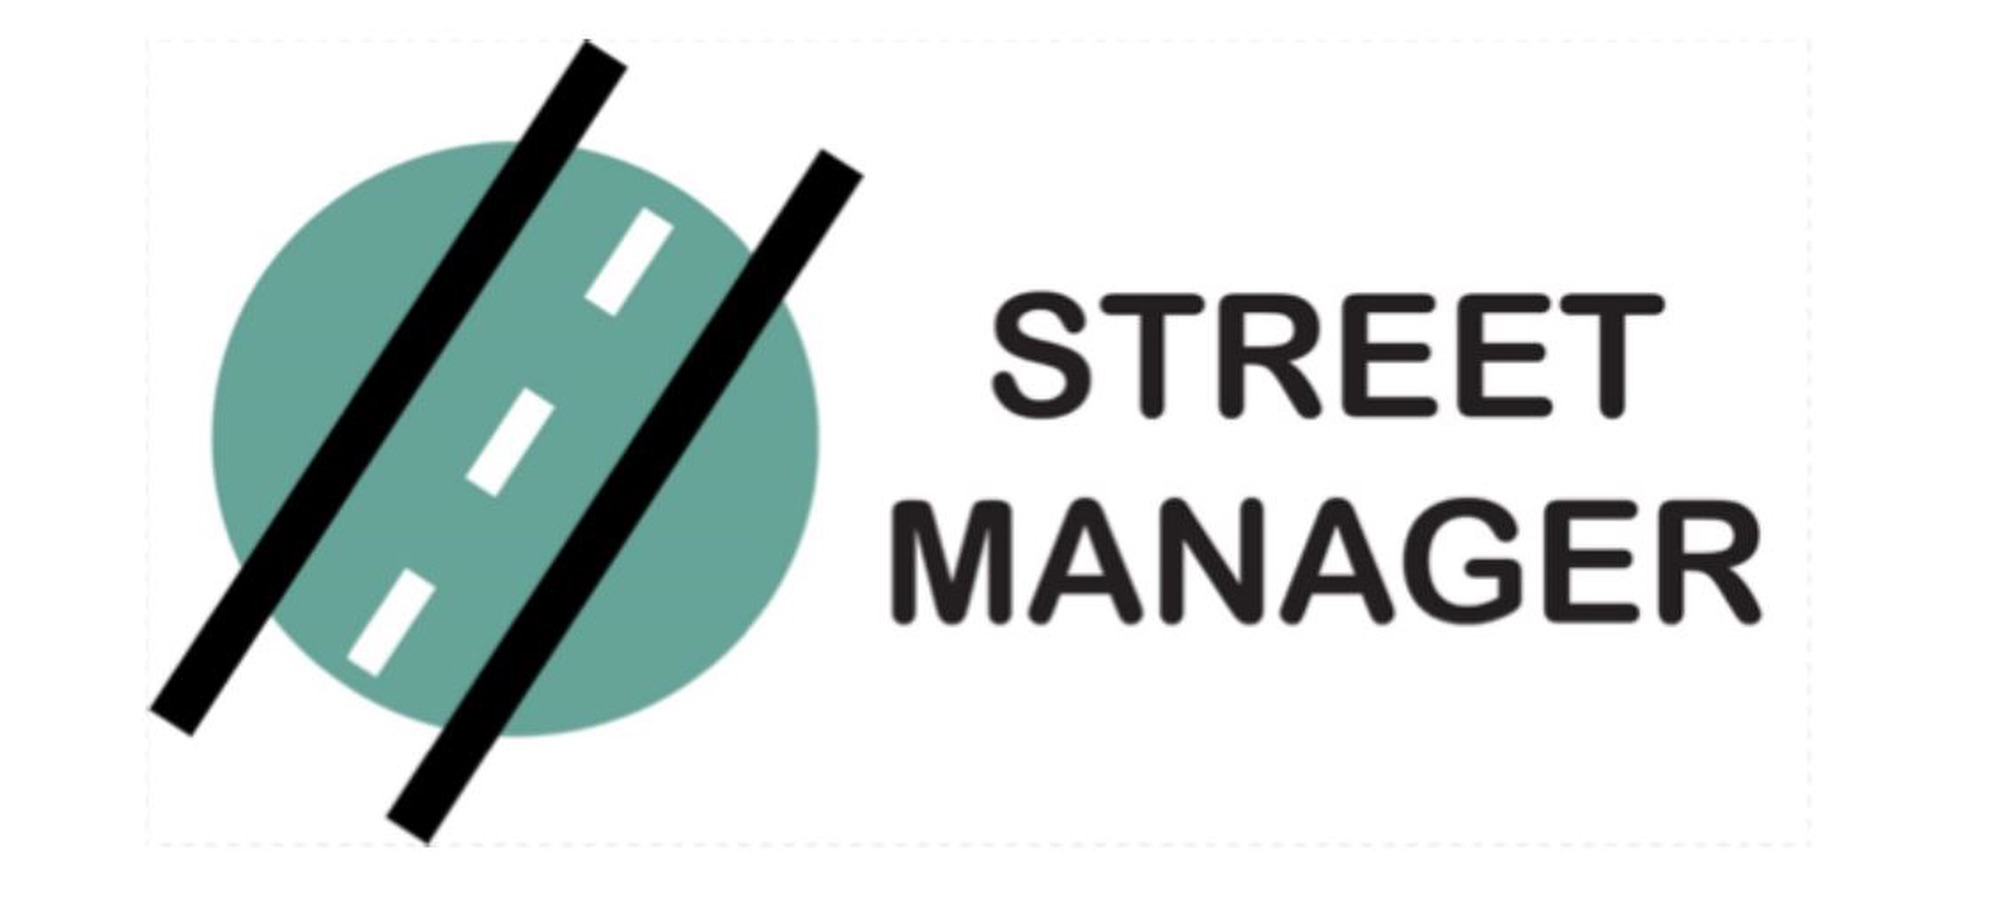 Street Manager